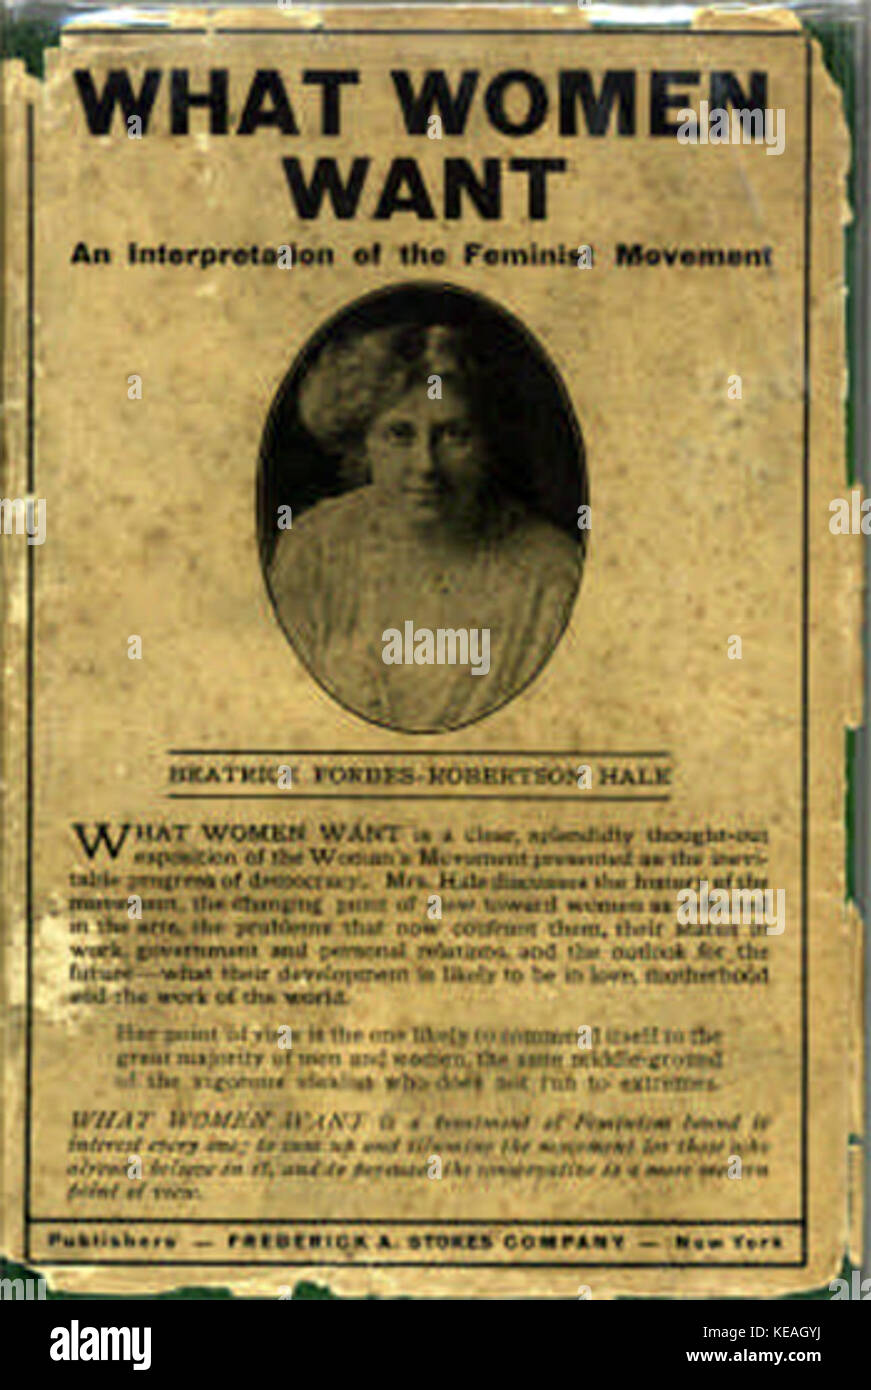 What Women Want pamphlet Beatrice Forbes Robertson Hale - Stock Image